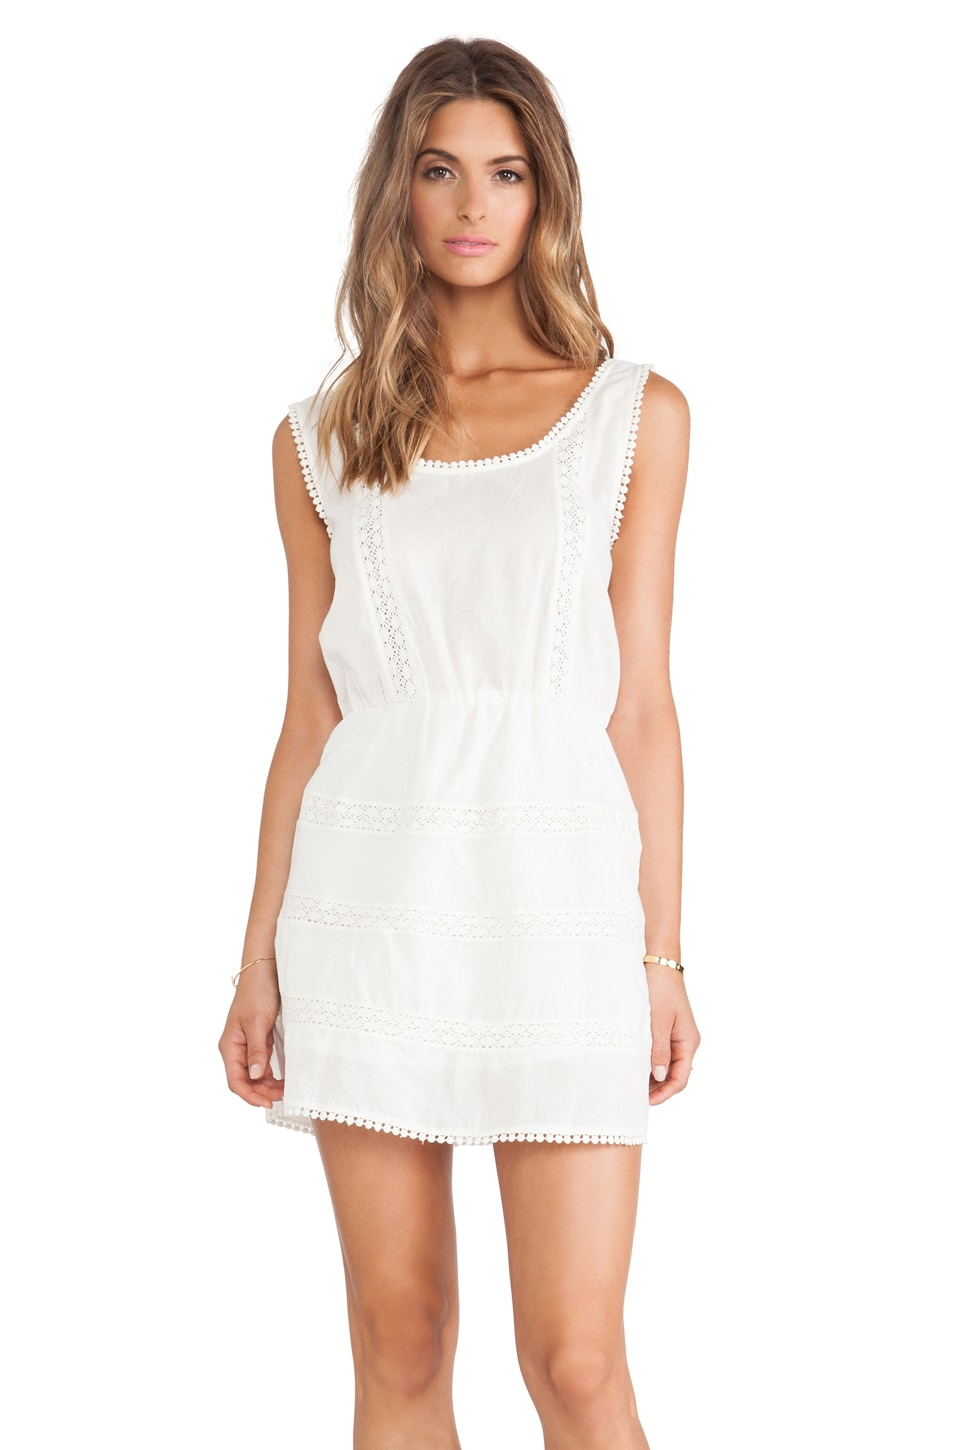 ANINE BING Sleeveless Bohemian Dress in Ivory